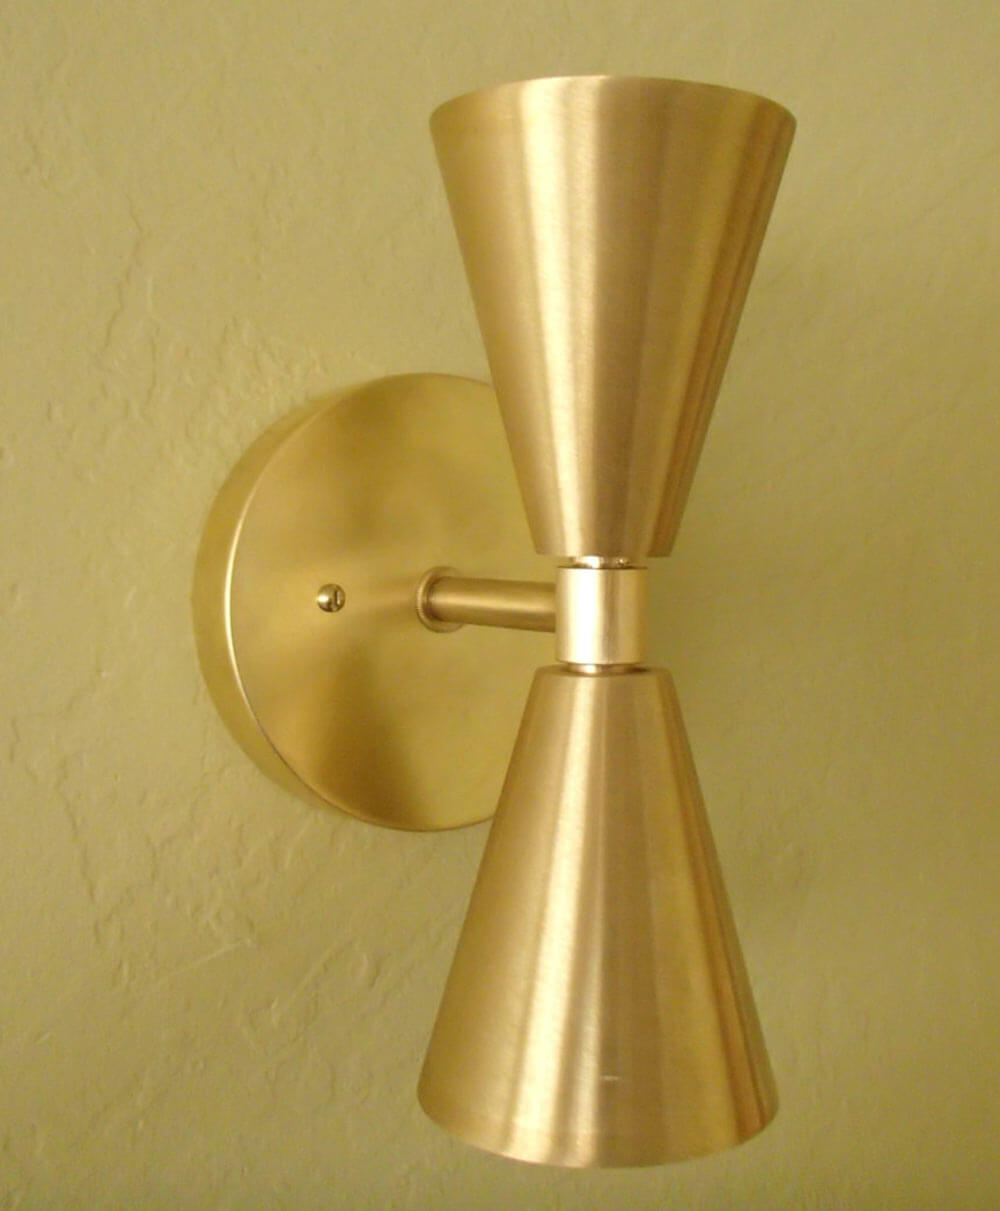 Six places to buy beautiful double cone bowtie lights from 79 brass midcentury wall sconce amipublicfo Image collections